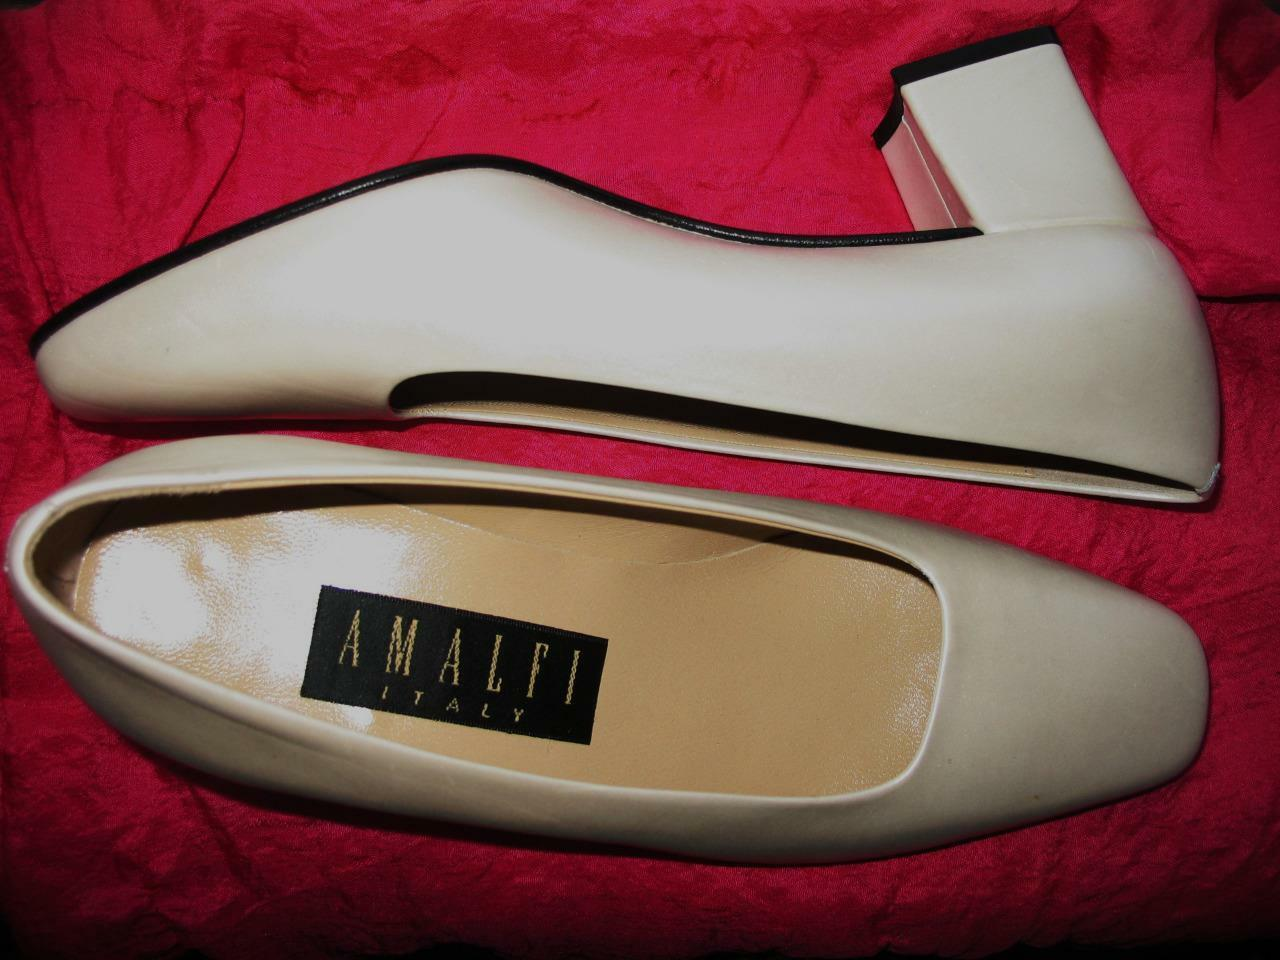 AMALFI Schuhe BEIGE PEARL LEATHER LOAFERS   SIZE 6B/36,5  MADE IN ITALY